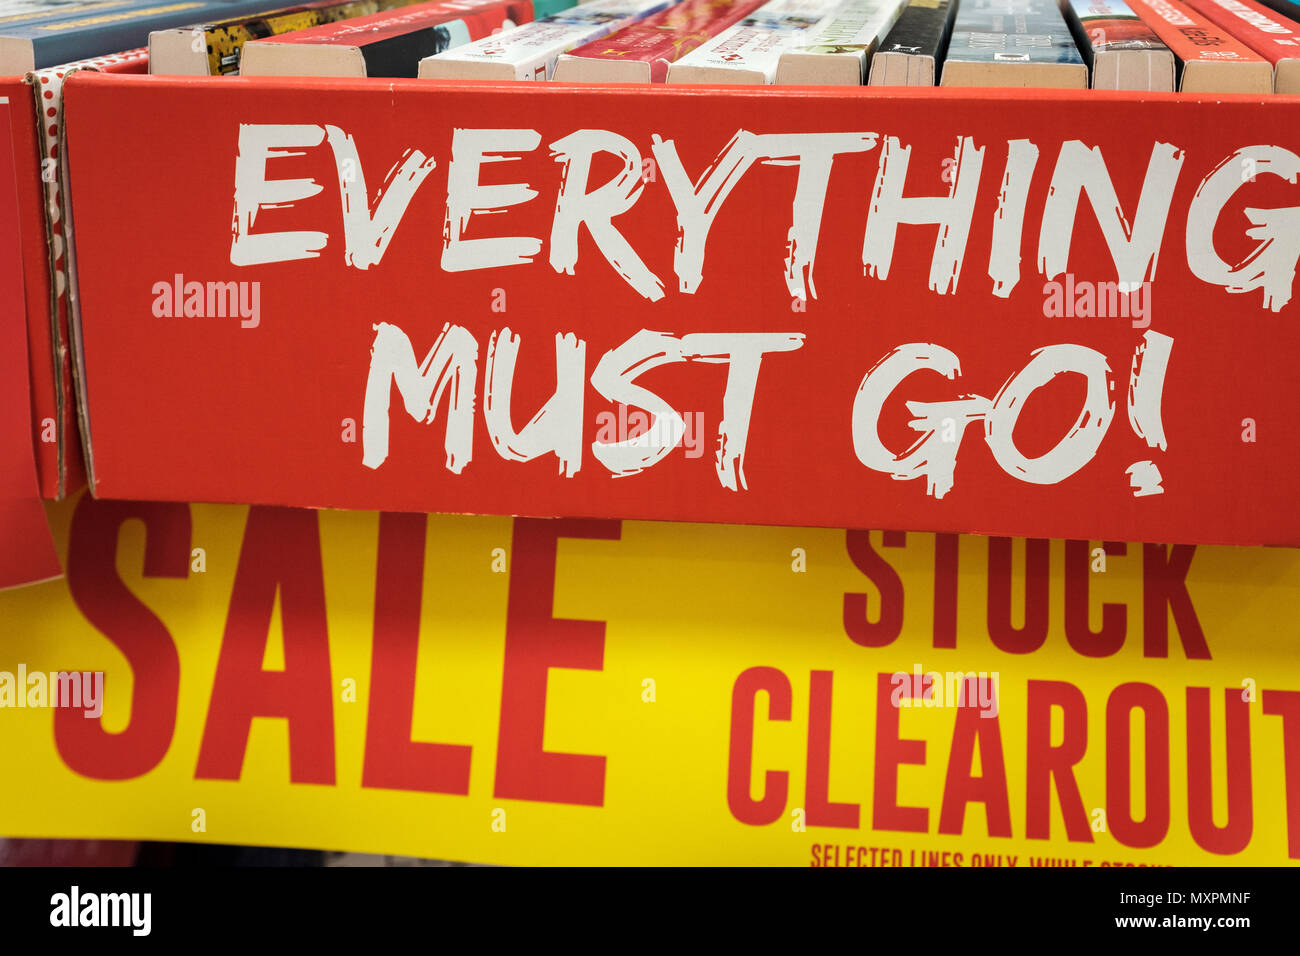 Retail-High Street Shop closure- stock clearout.Closing Down Sale-everything must go.London,UK - Stock Image